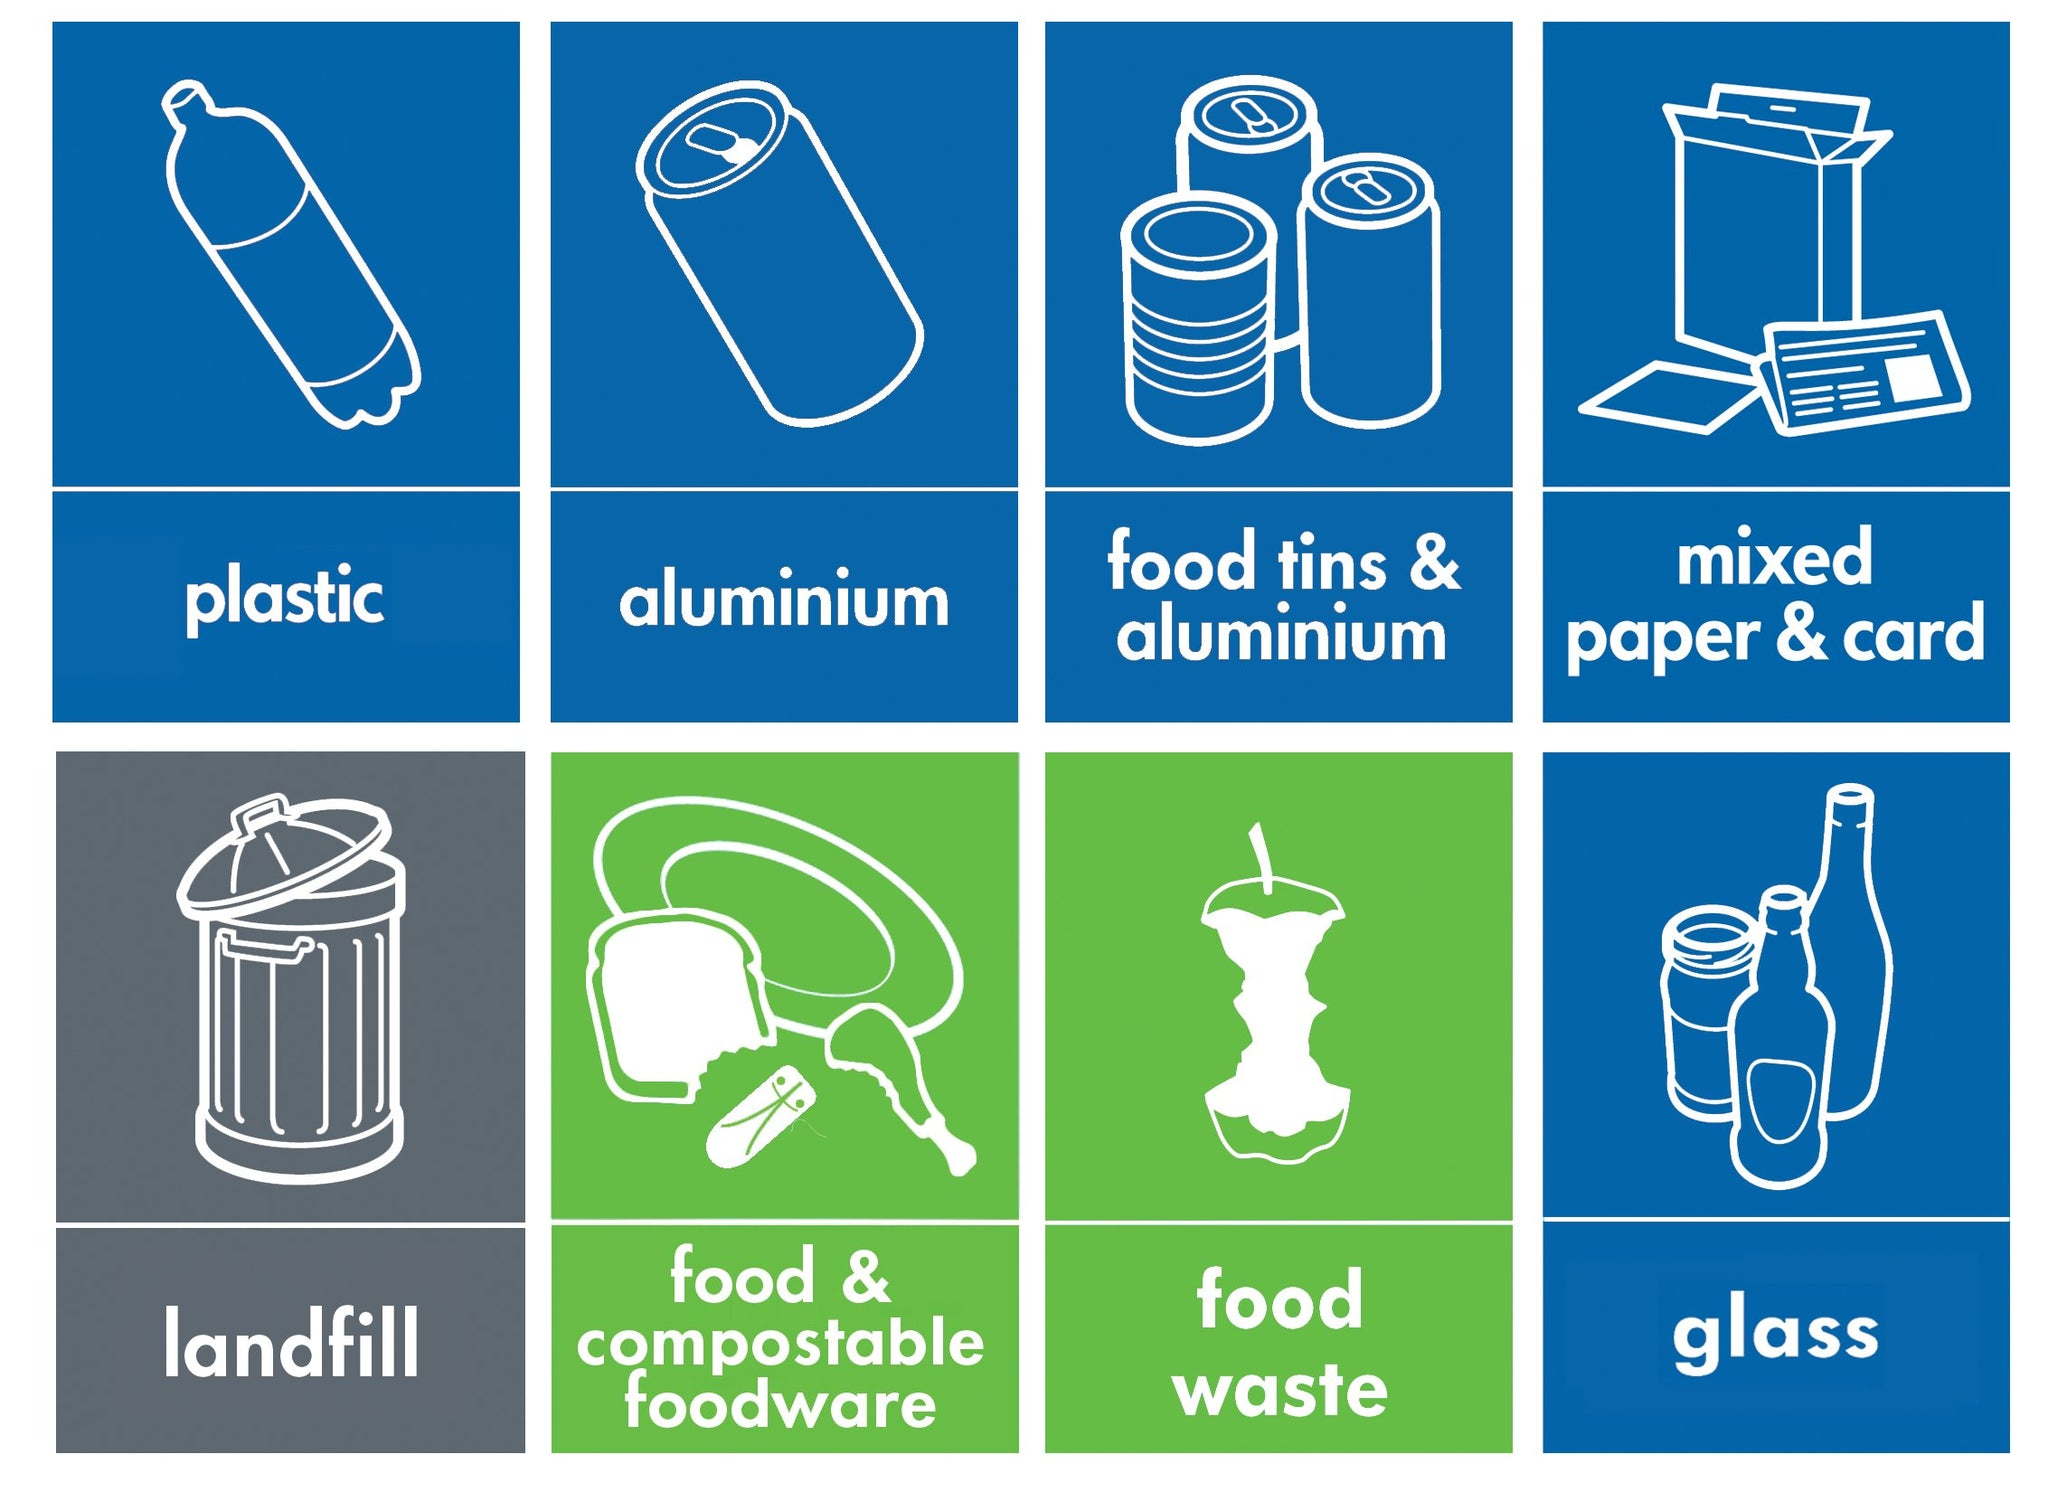 Print Your Own Recycling Signage for Your Deli or Food Prep Kitchen